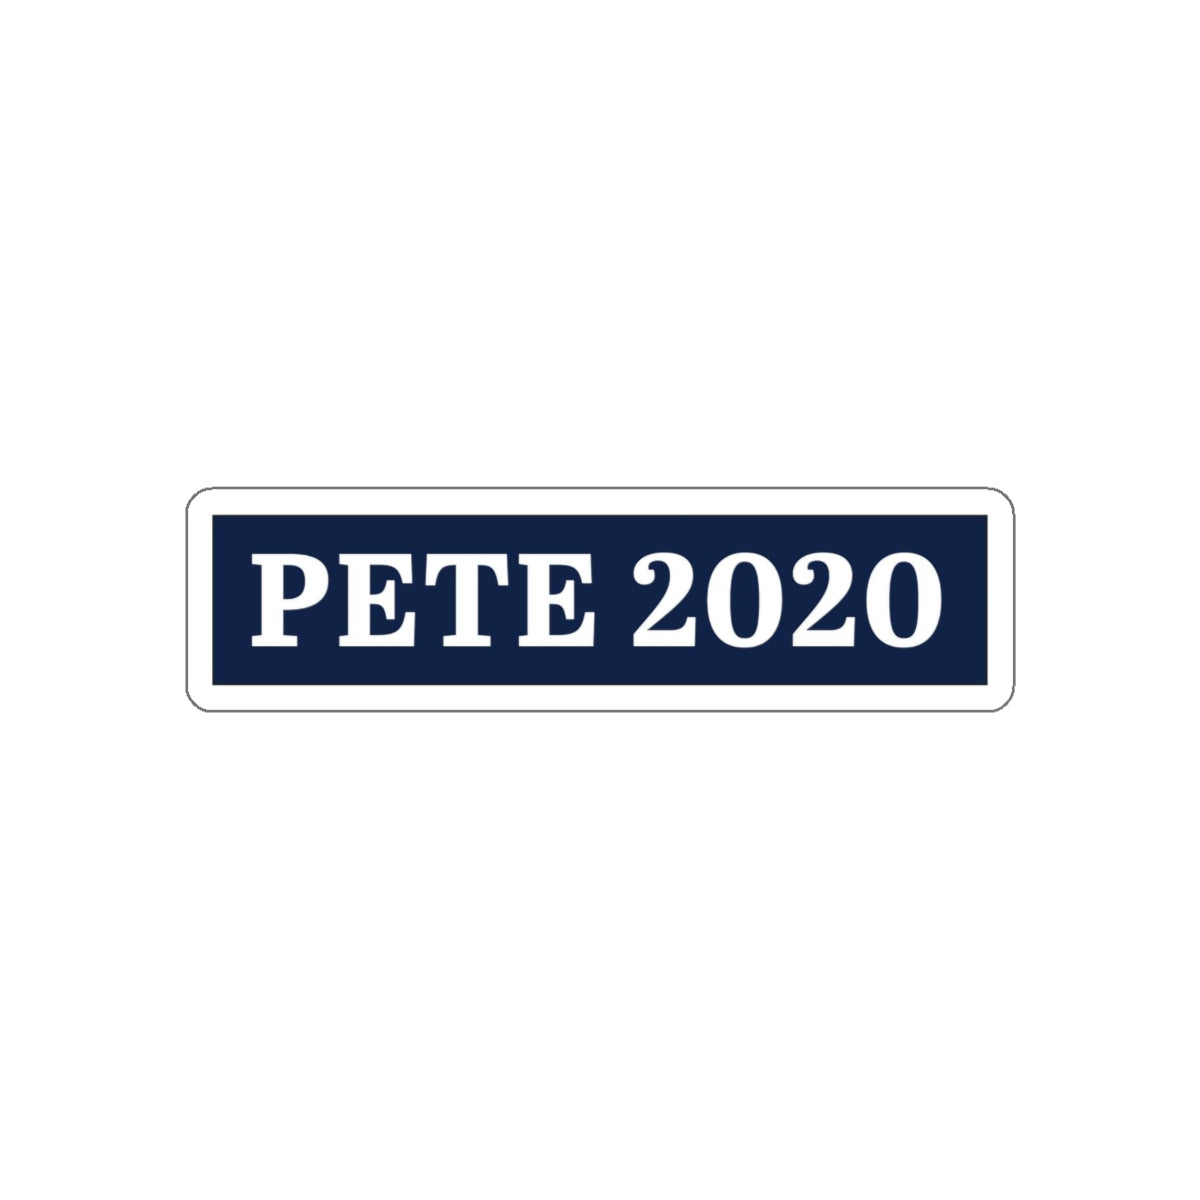 Pete 2020 bumper sticker